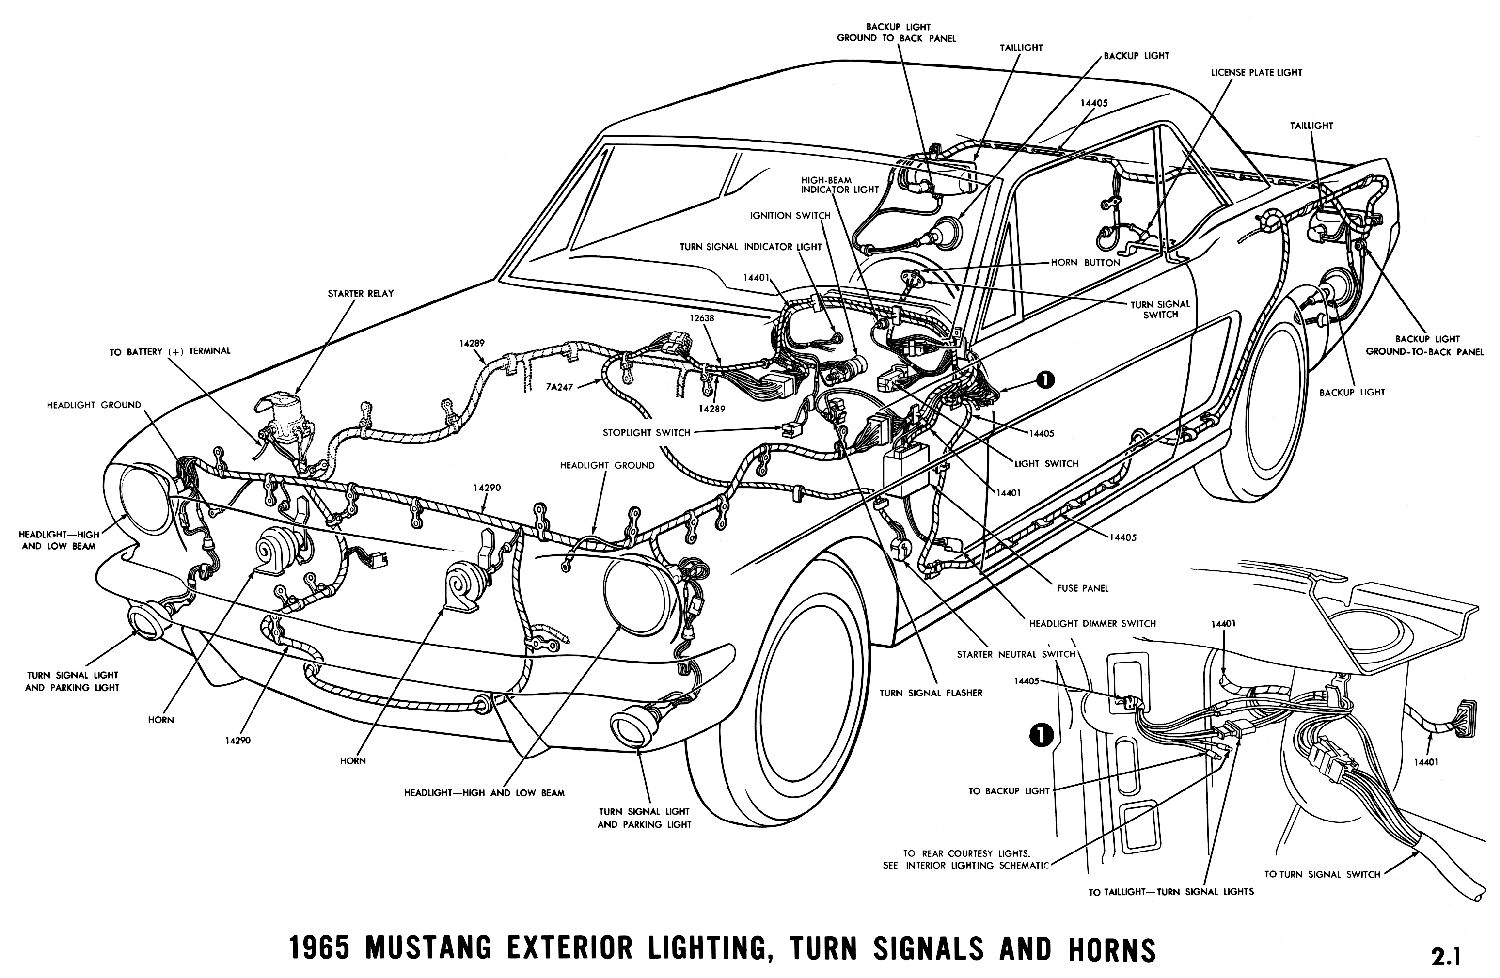 1965d 1965 mustang wiring diagrams average joe restoration 1965 mustang wiring diagram pdf at edmiracle.co